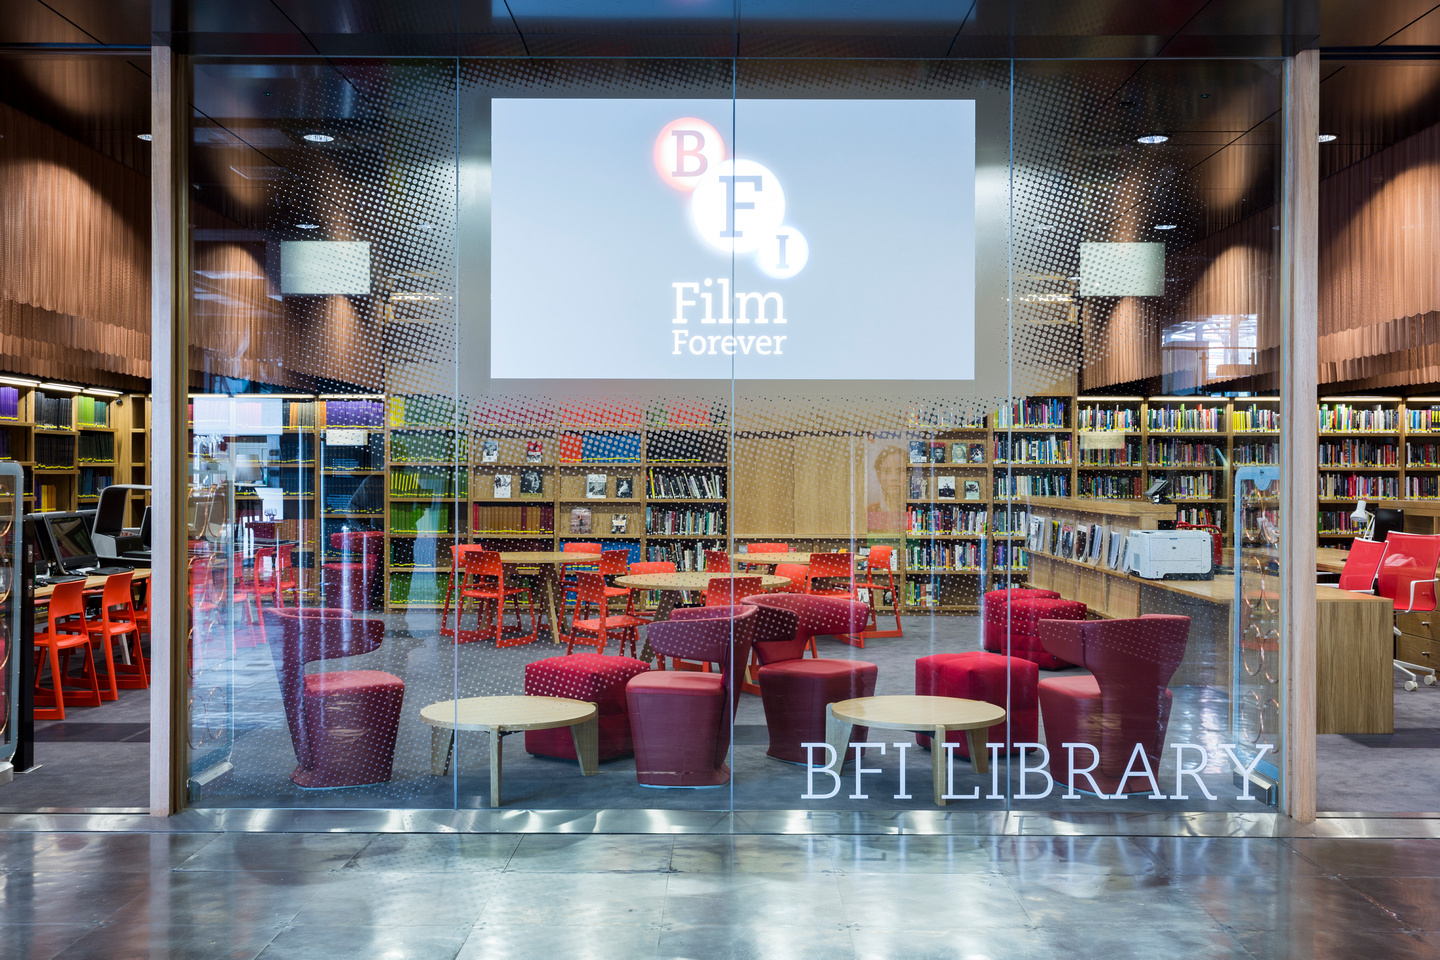 BFI Library